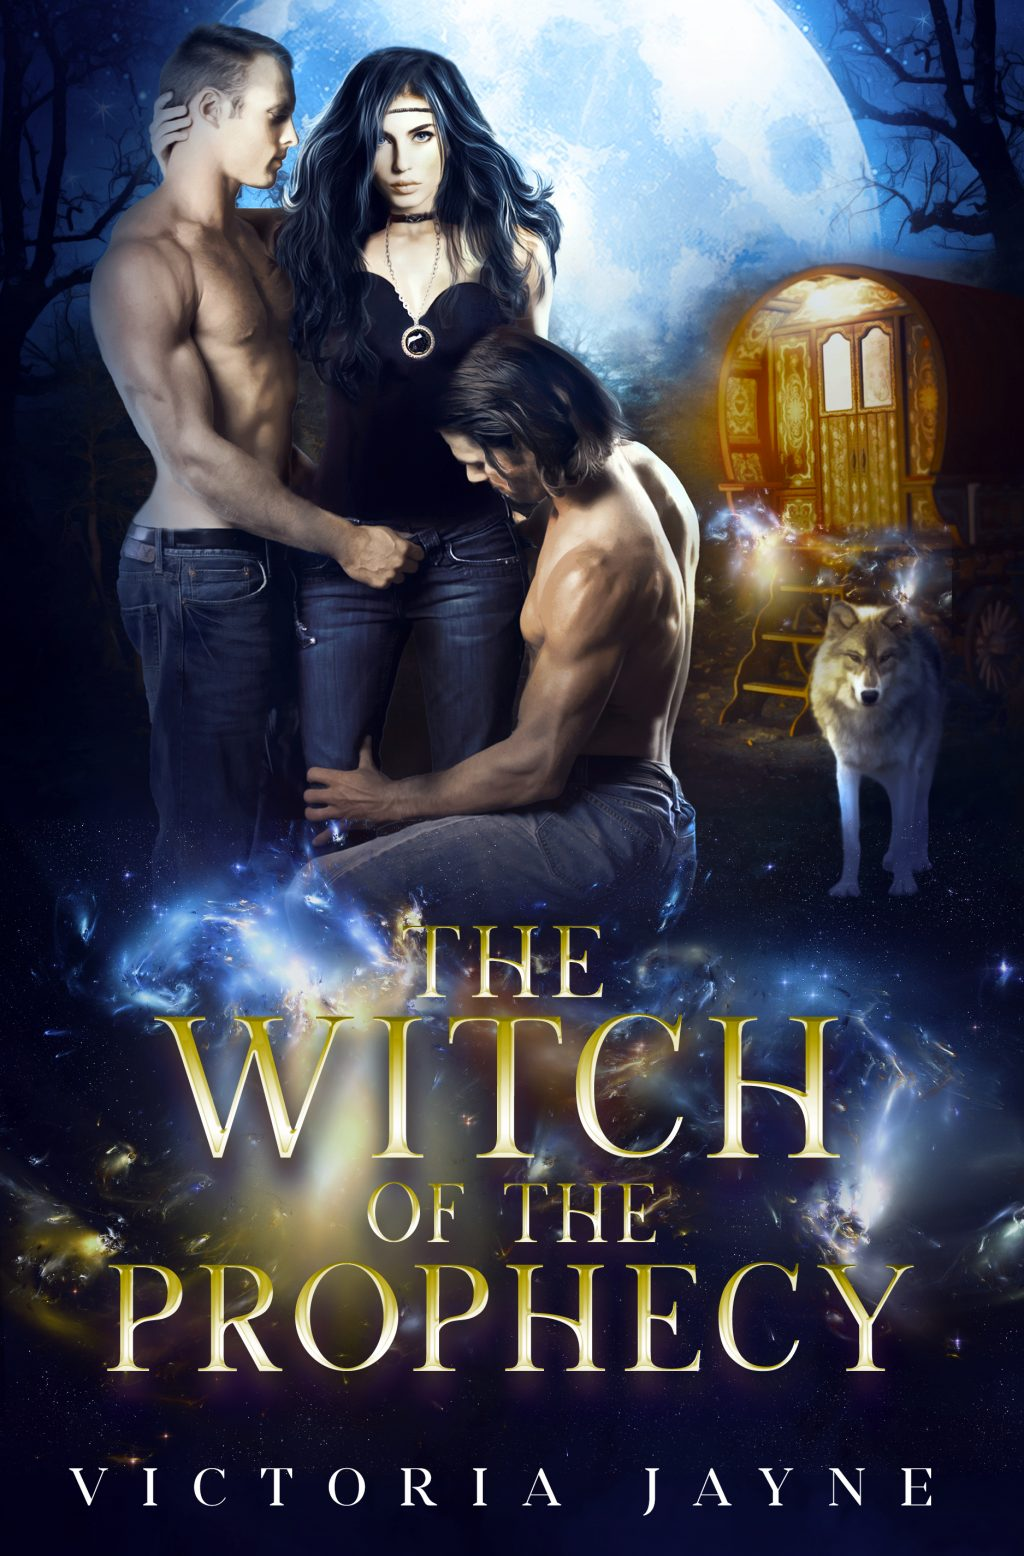 The Witch of the Prophecy by Victoria Jayne